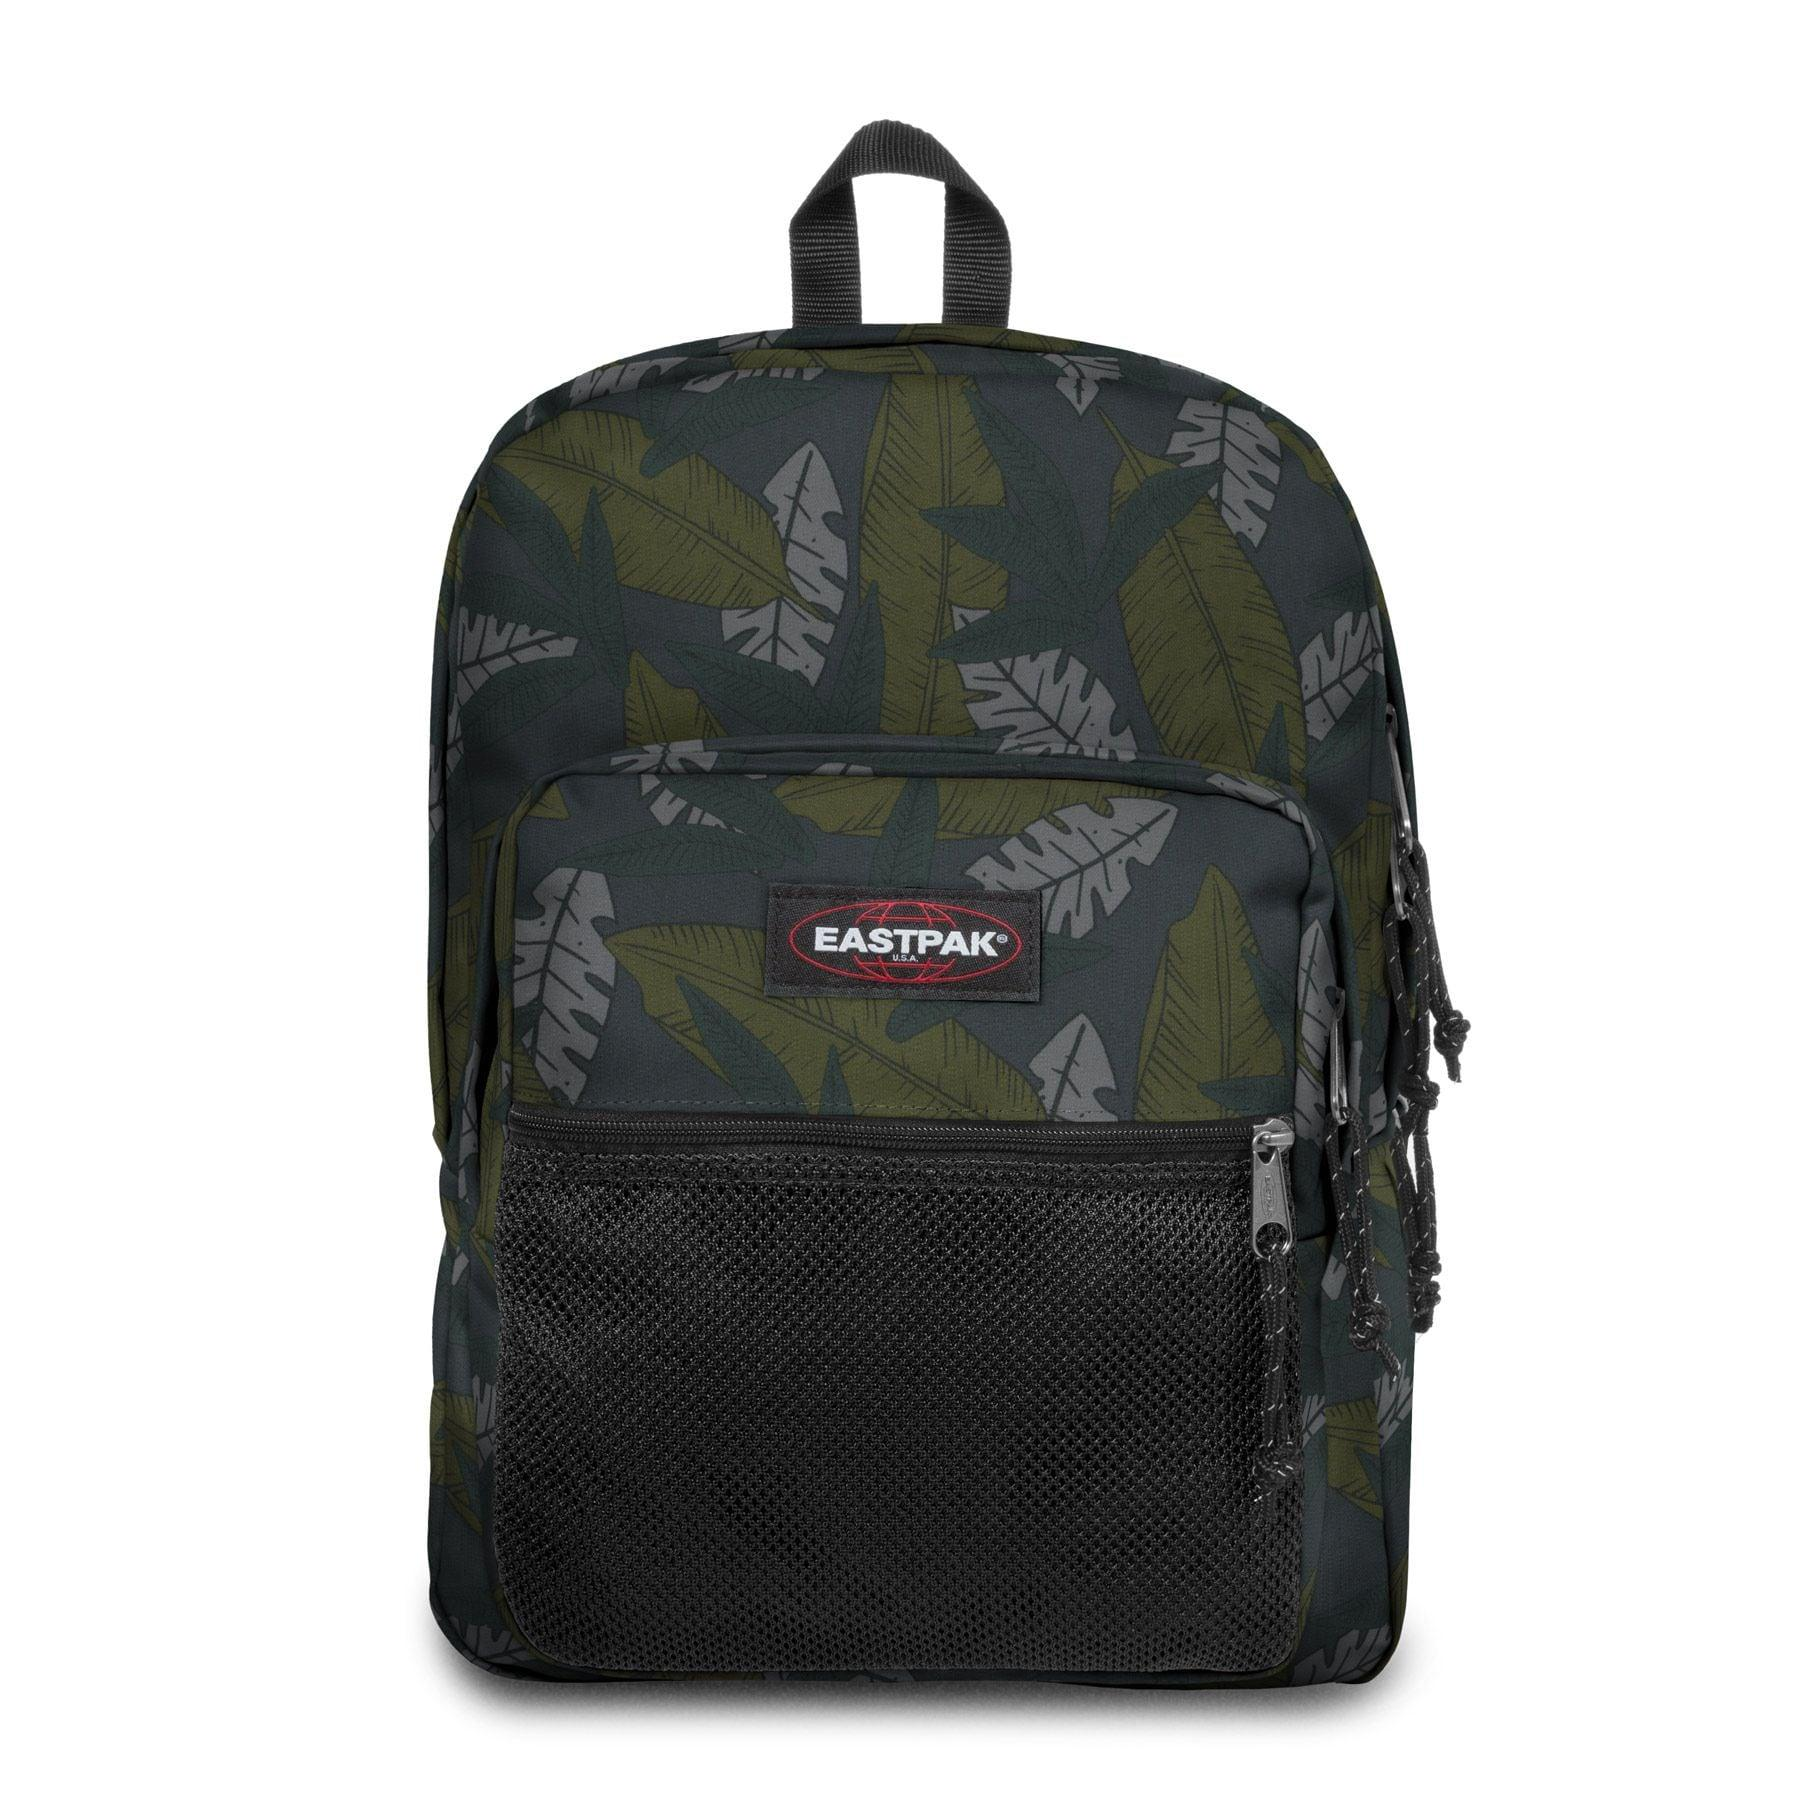 Eastpak Pinnacle BRIZE FOREST